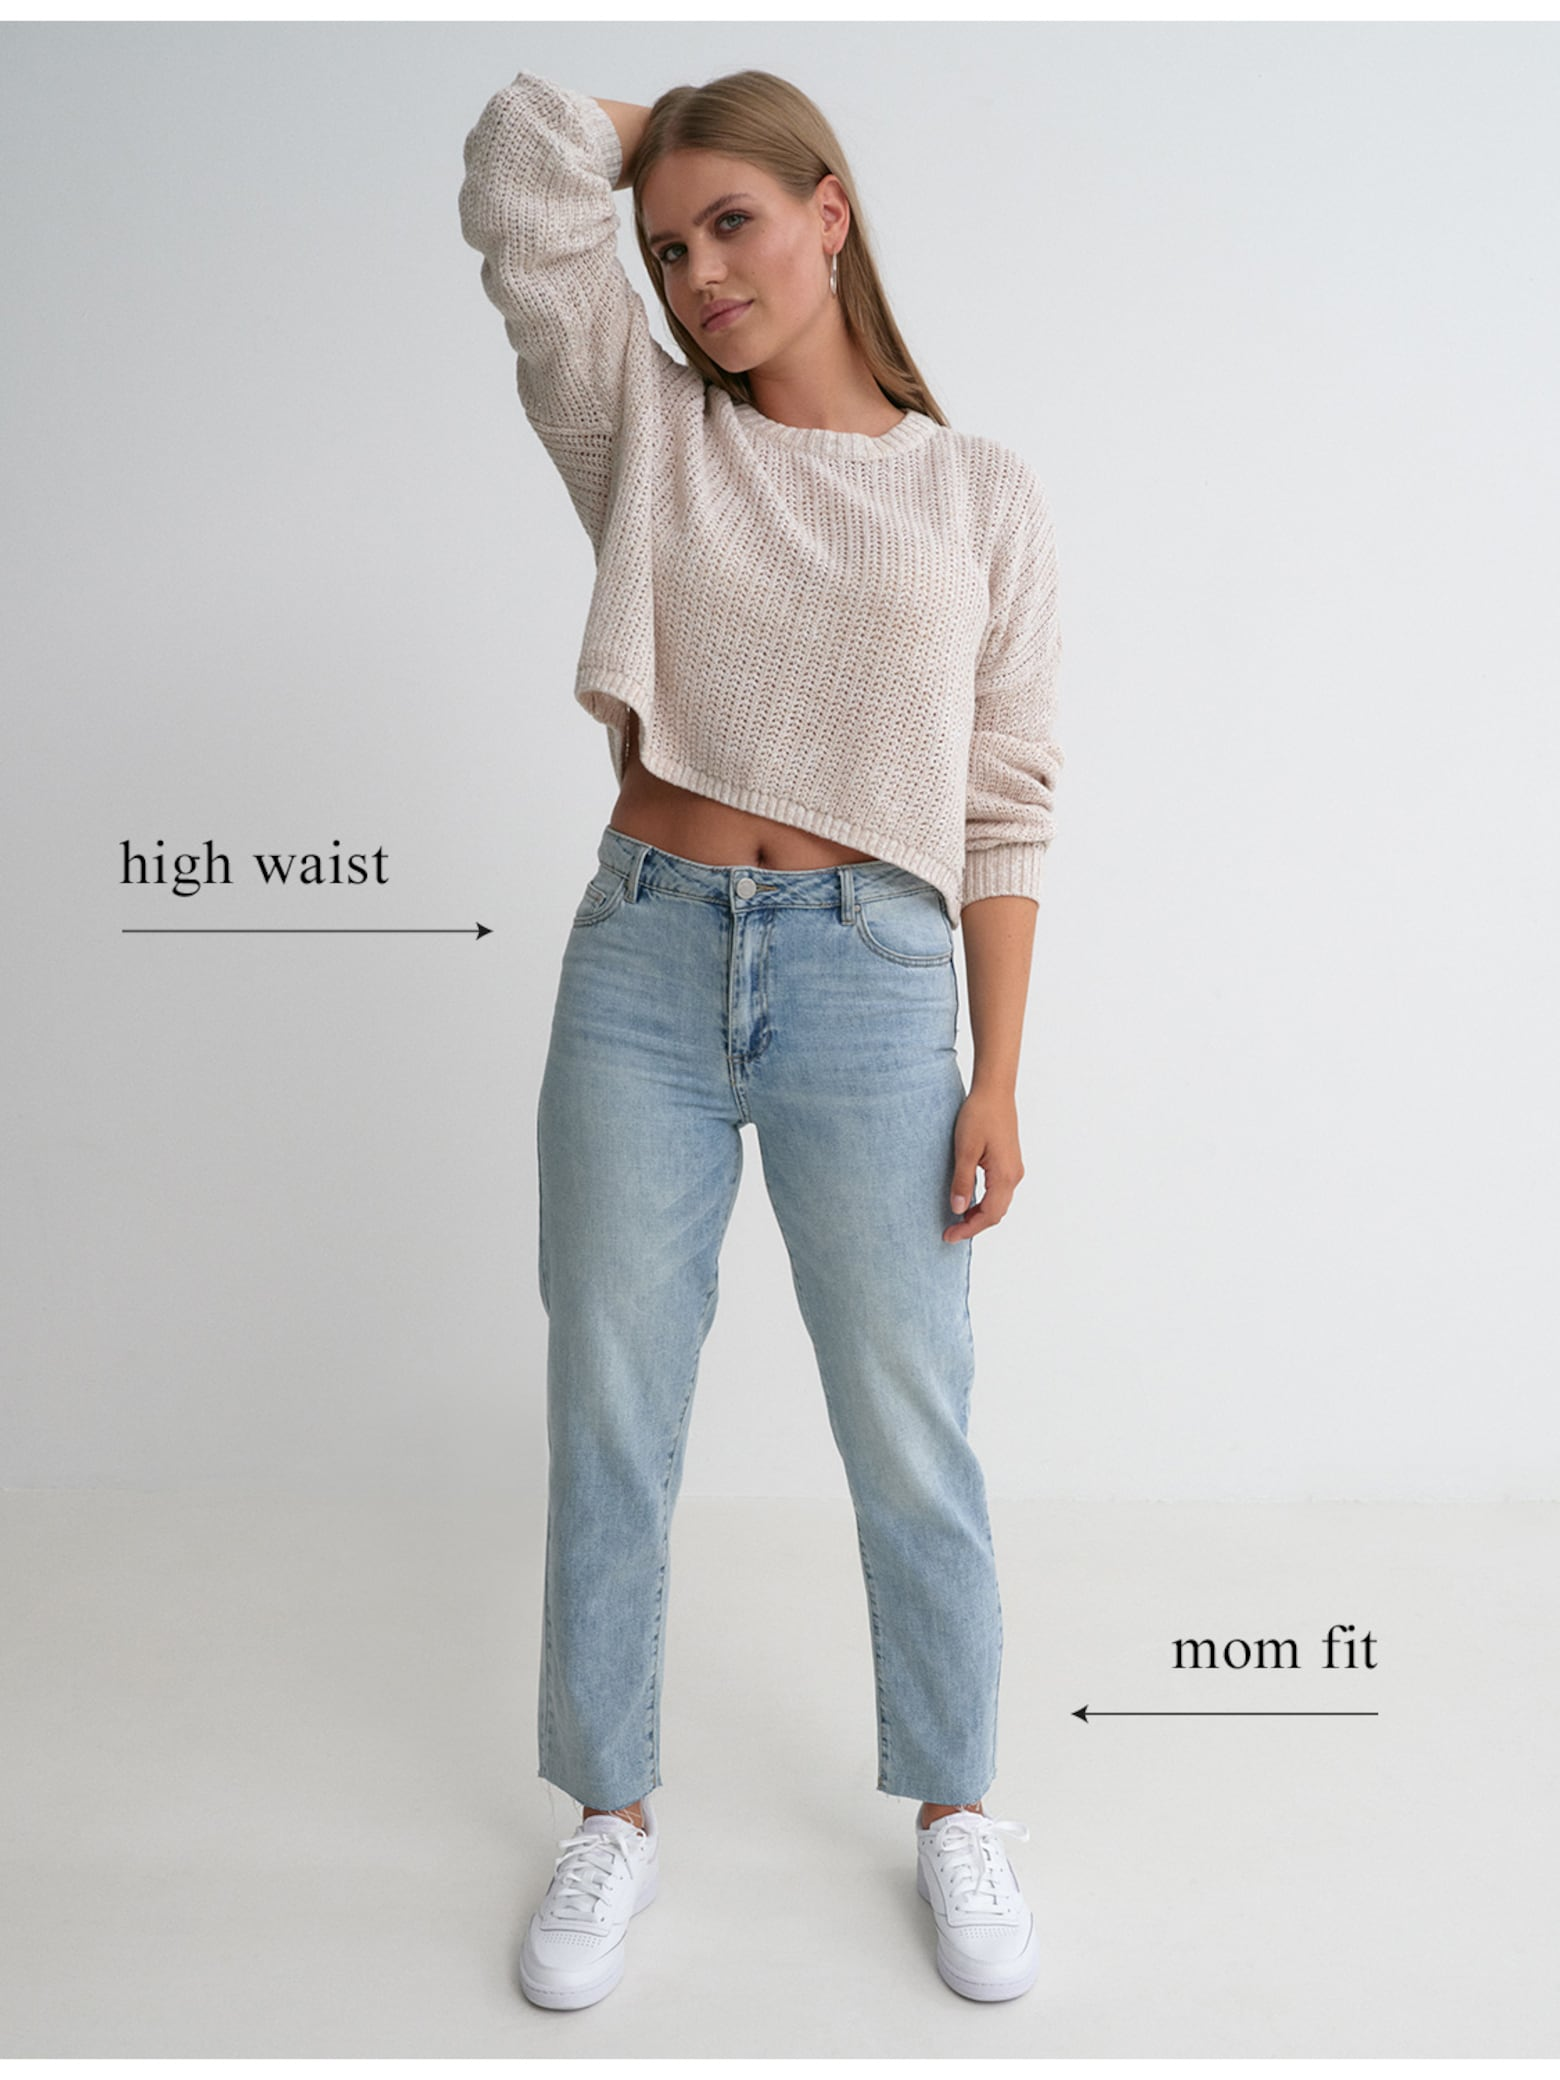 Bodytype: Medium Tall & Straight Top 3 Jeans Fits